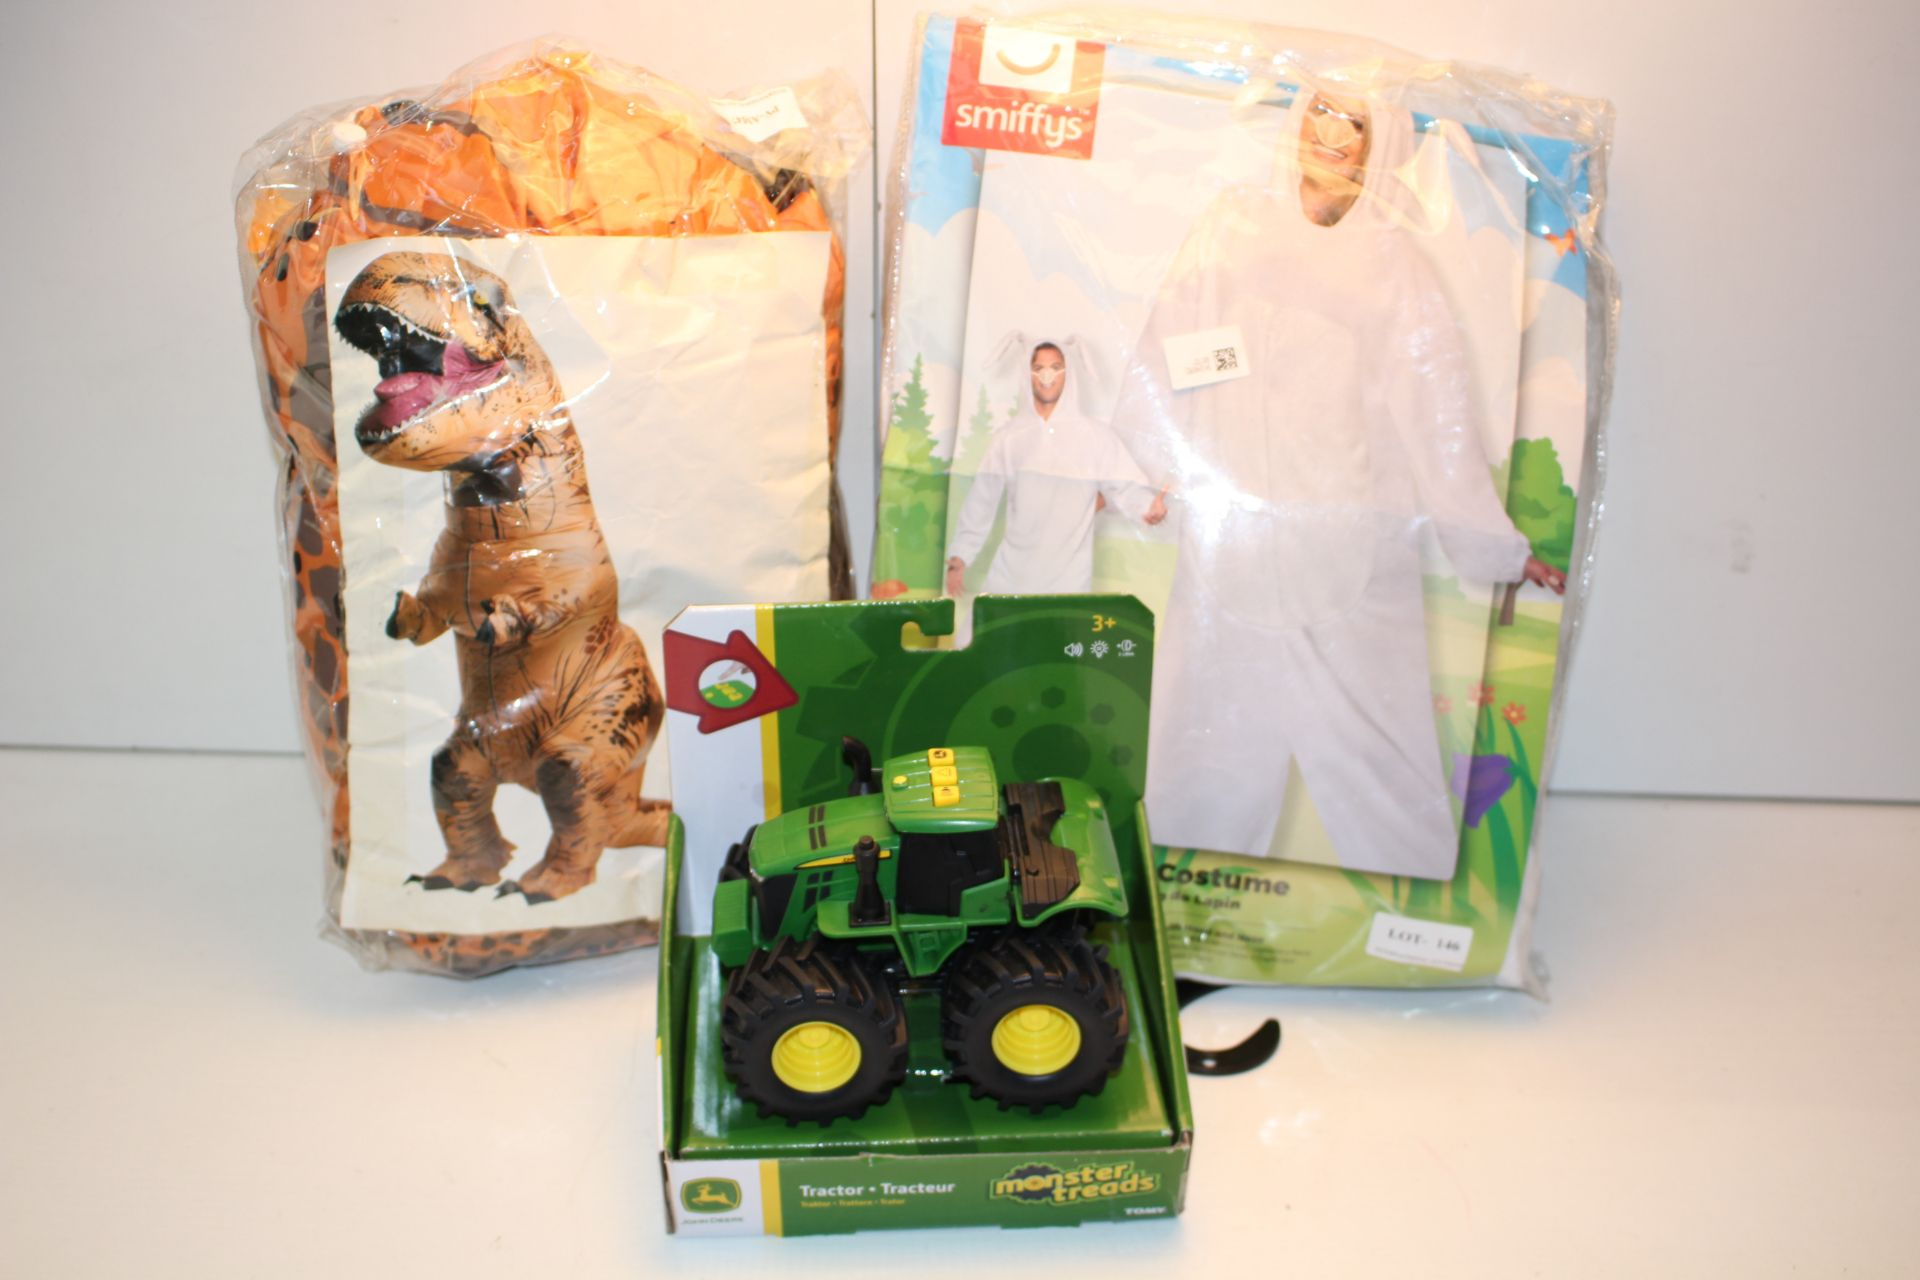 3X ASSORTED ITEMS TO INCLUDE TOY TRACTOR, SMIFFYS BUNNY SUIT & OTHER (IMAGE DEPICTS STOCK)